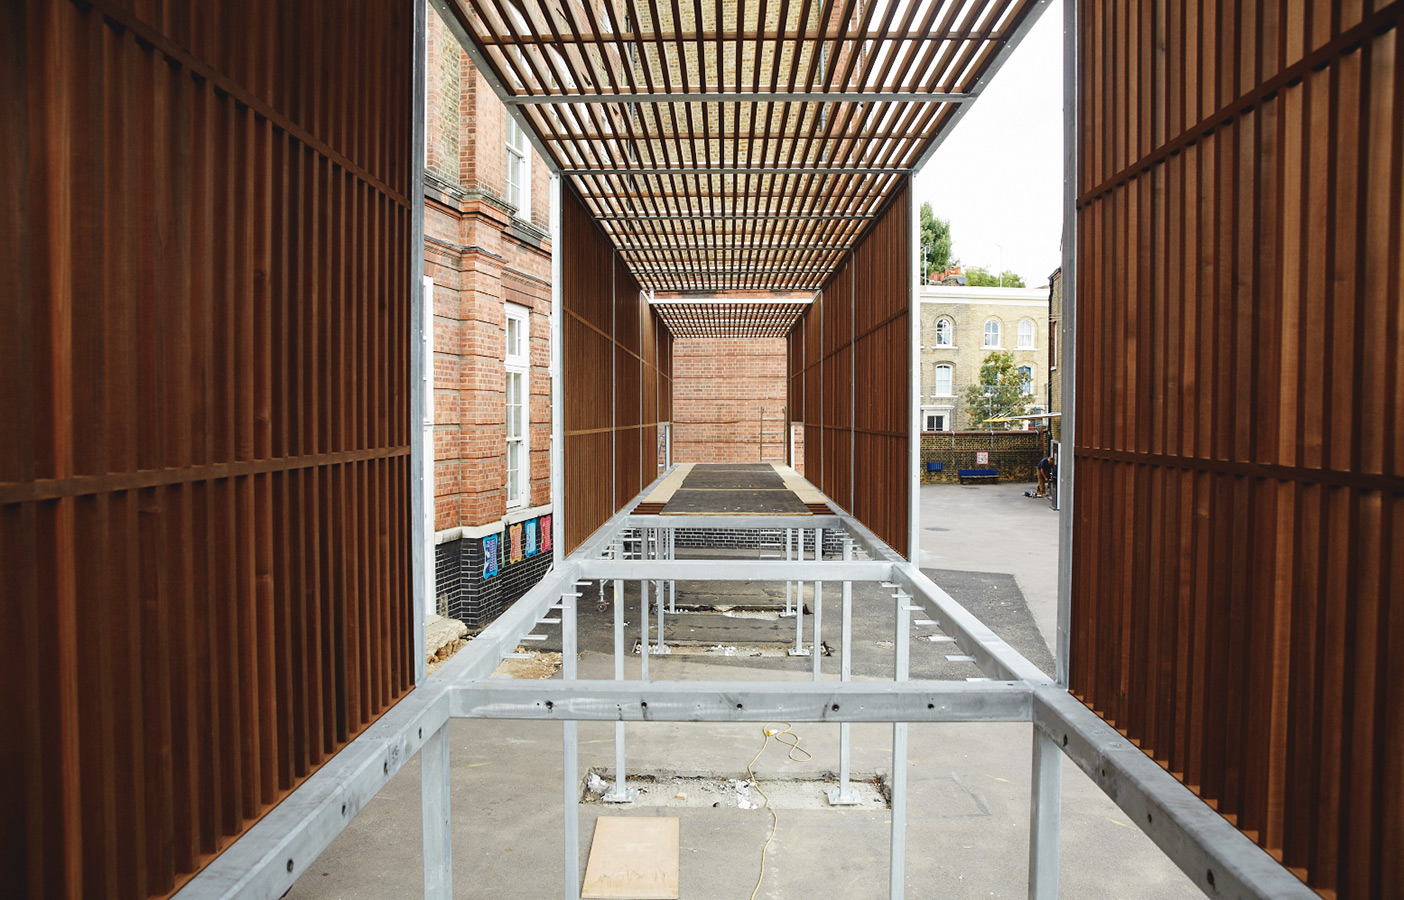 Aldworth James & Bond | The Chisenhale play structure mid-install